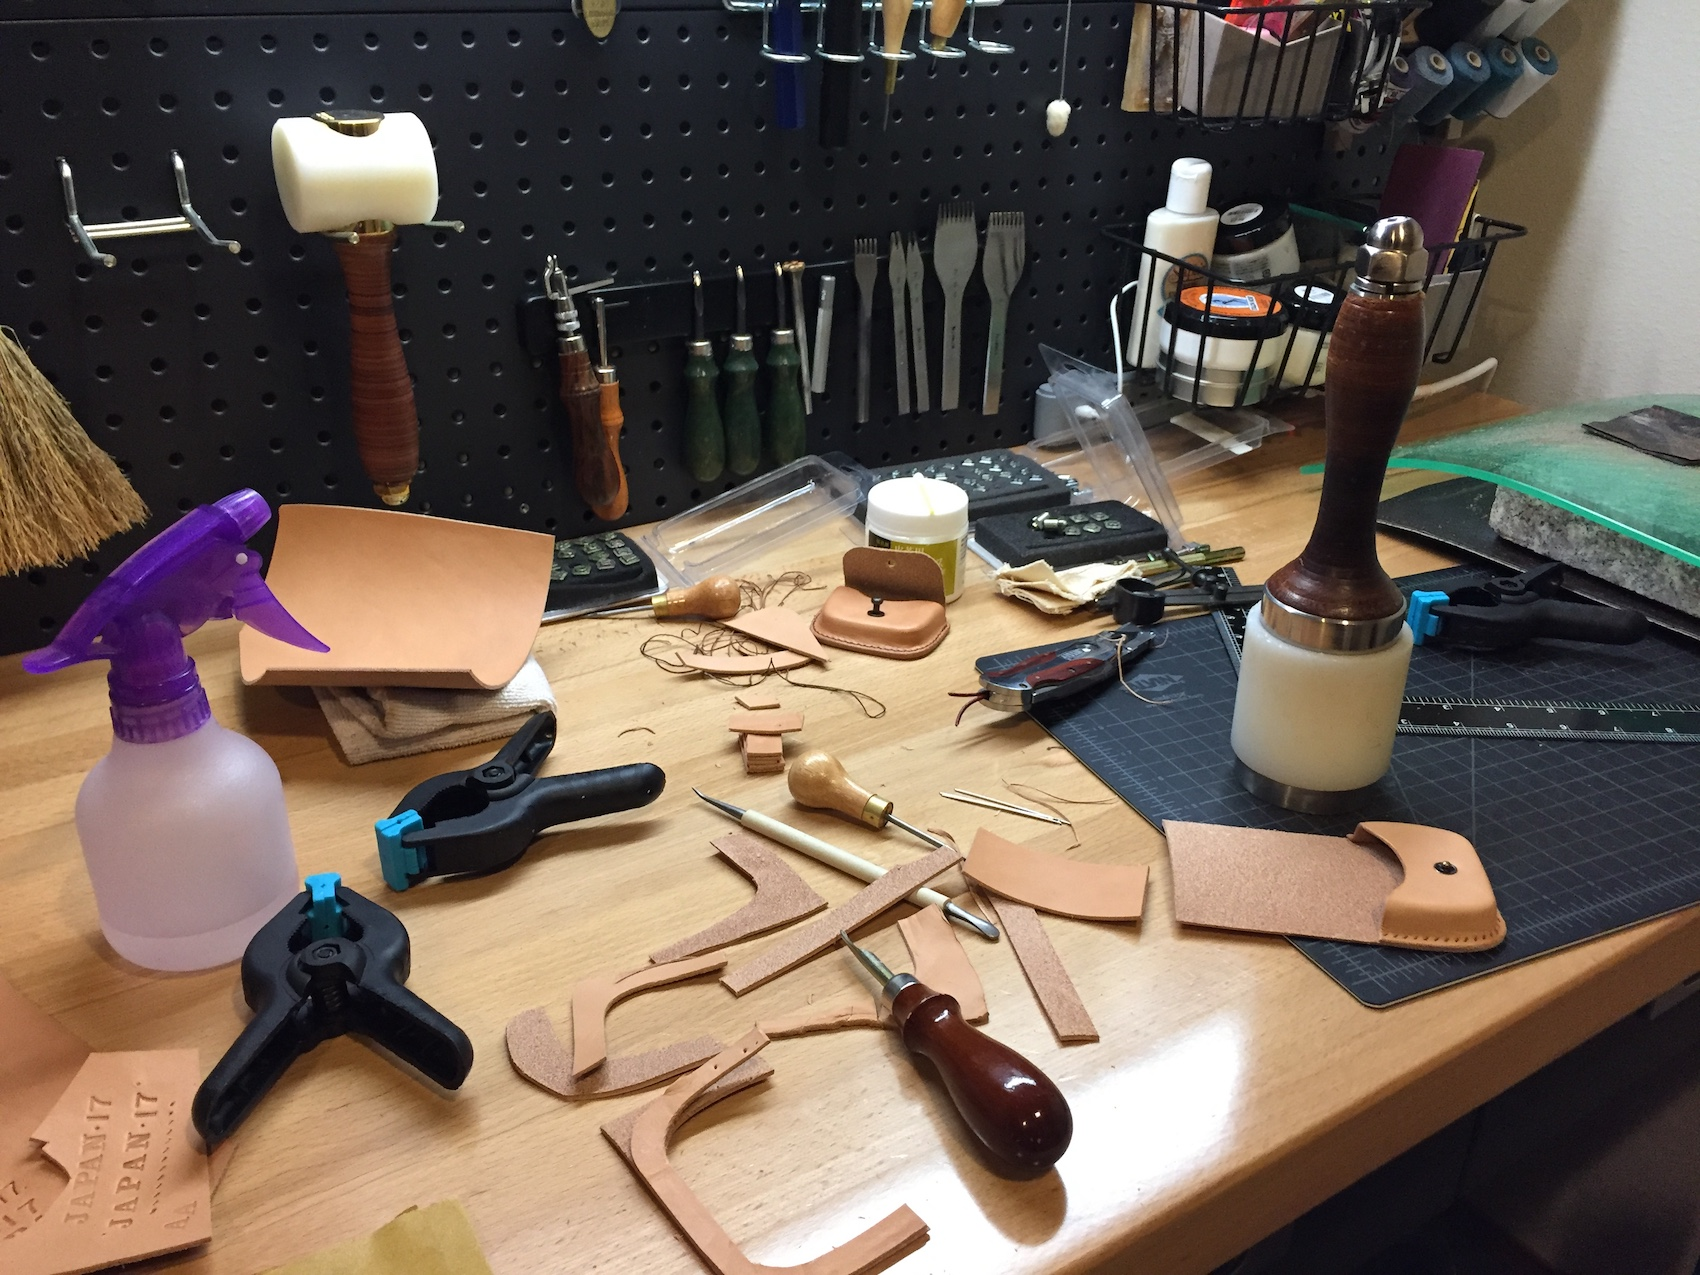 I usually like to keep my workbench open and cleared off as I'm working, but it ends up like this during random projects.